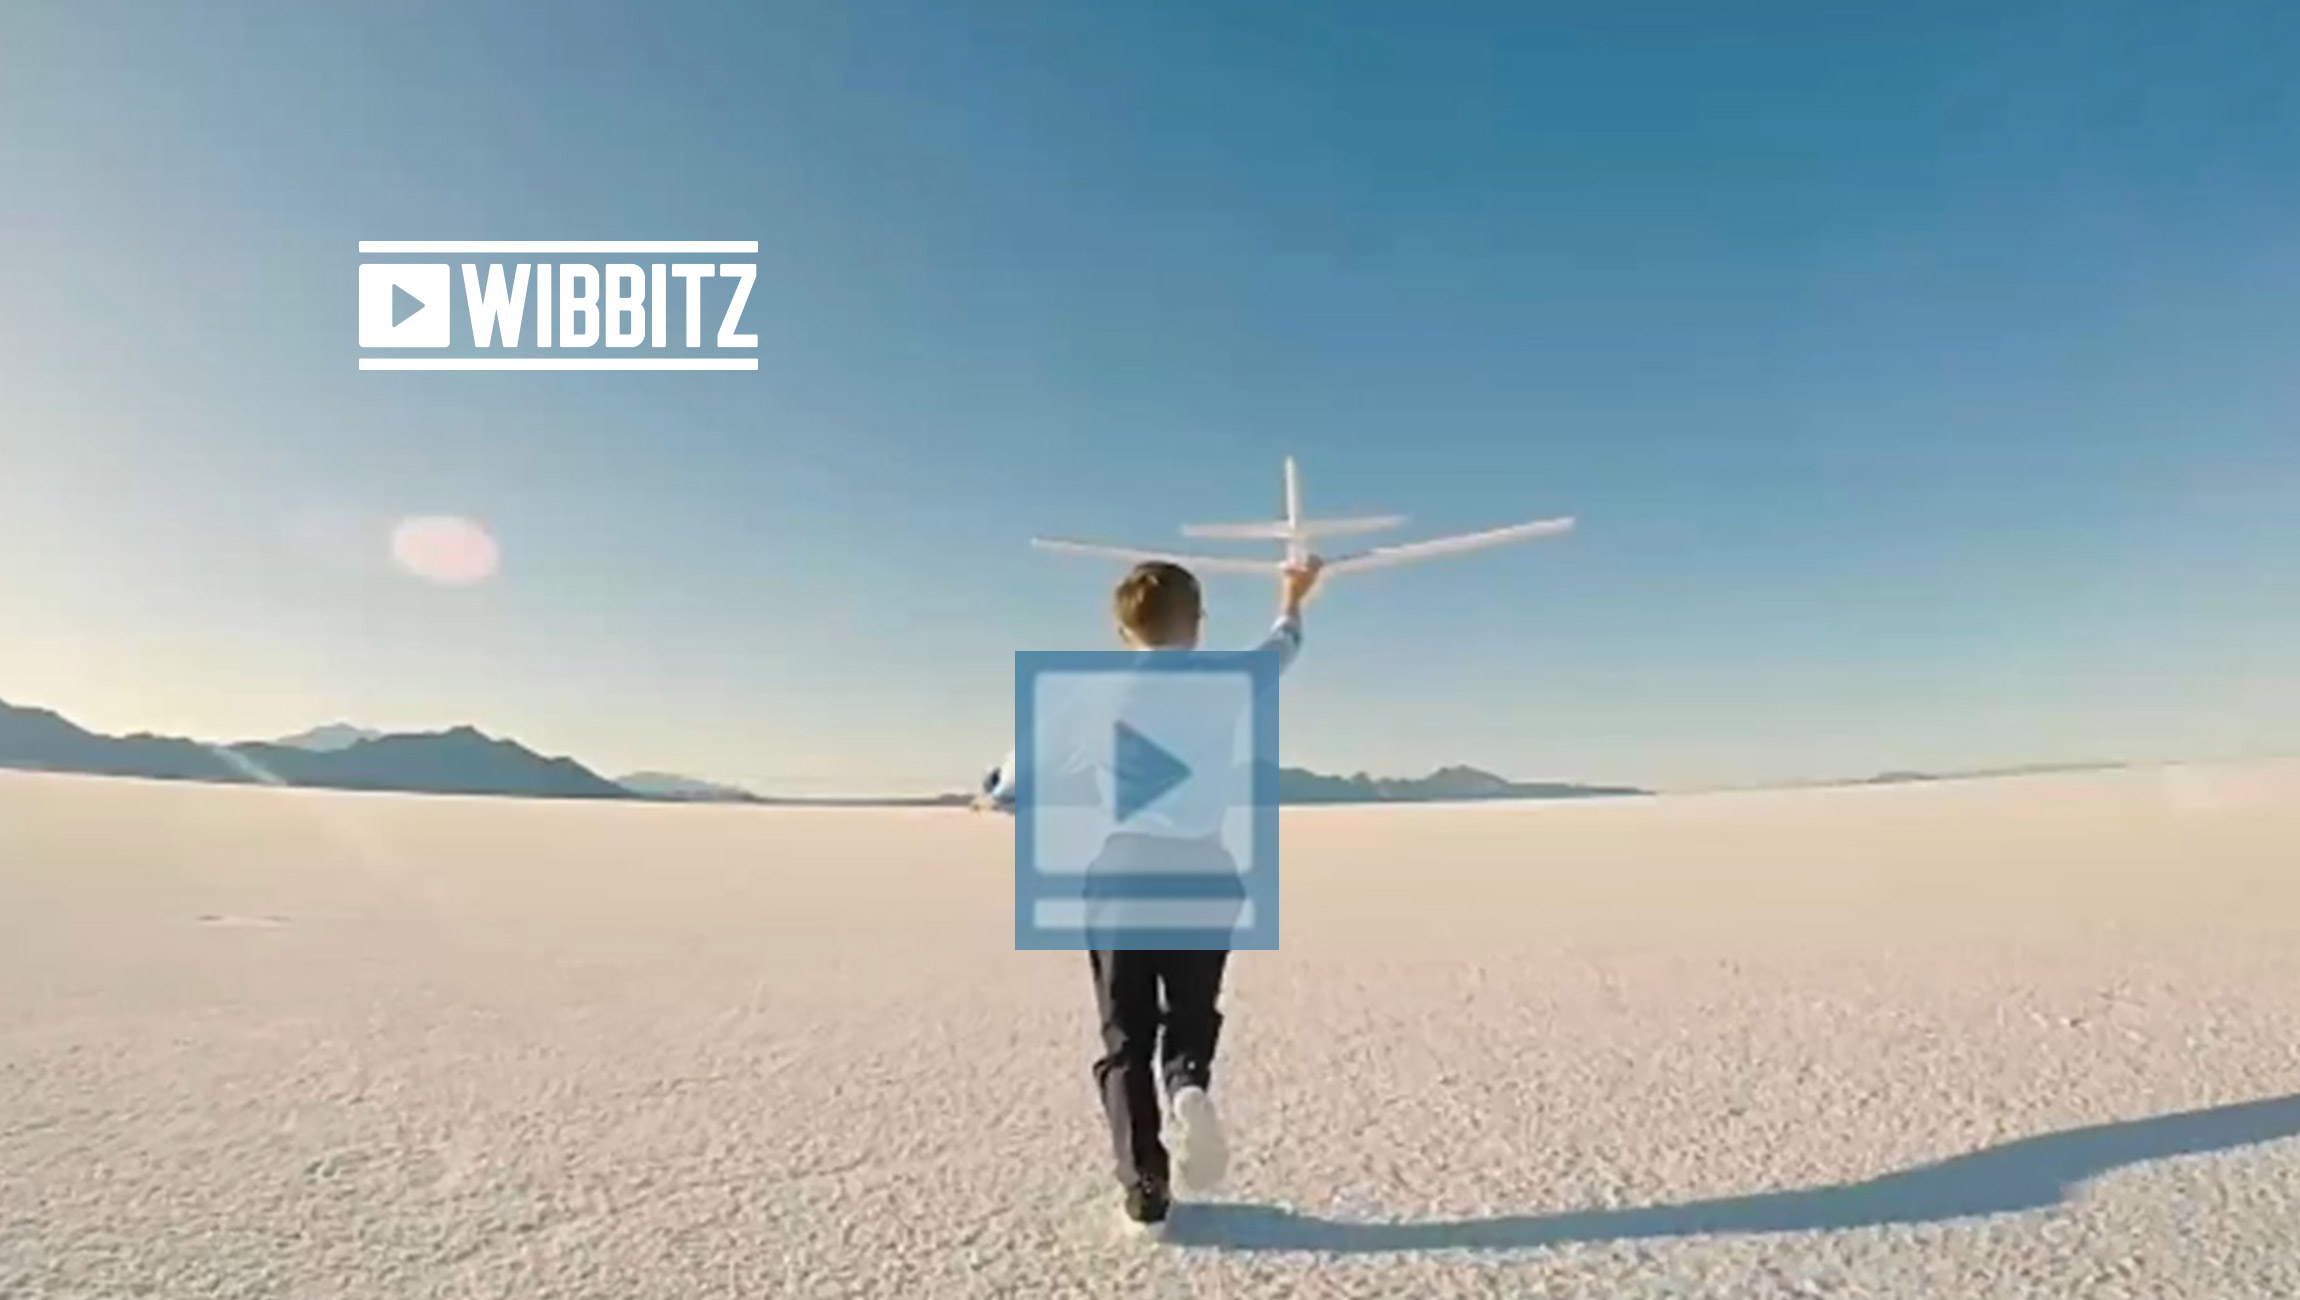 Wibbitz Releases New Research on Millennial and Generation Z Audience Trends in Social Video